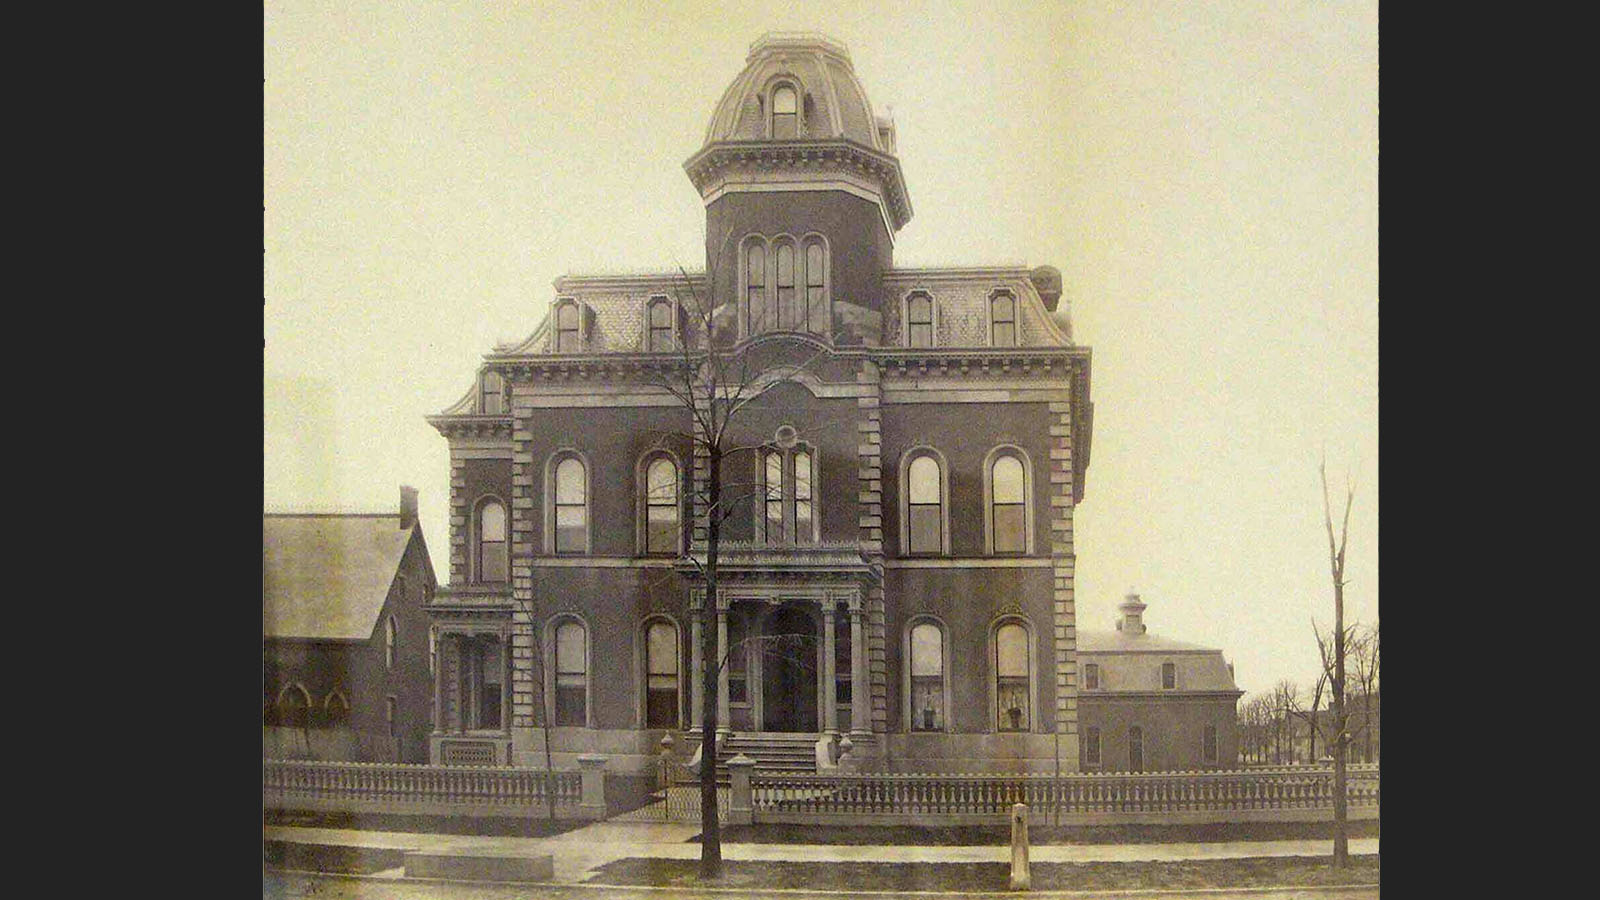 It is long rumored the Blocher Mansion played host to a forbidden love story between a successful businessman's son and his family's maid during the 1880's. (Photo courtesy of Buffalo as an Architectural Museum.)